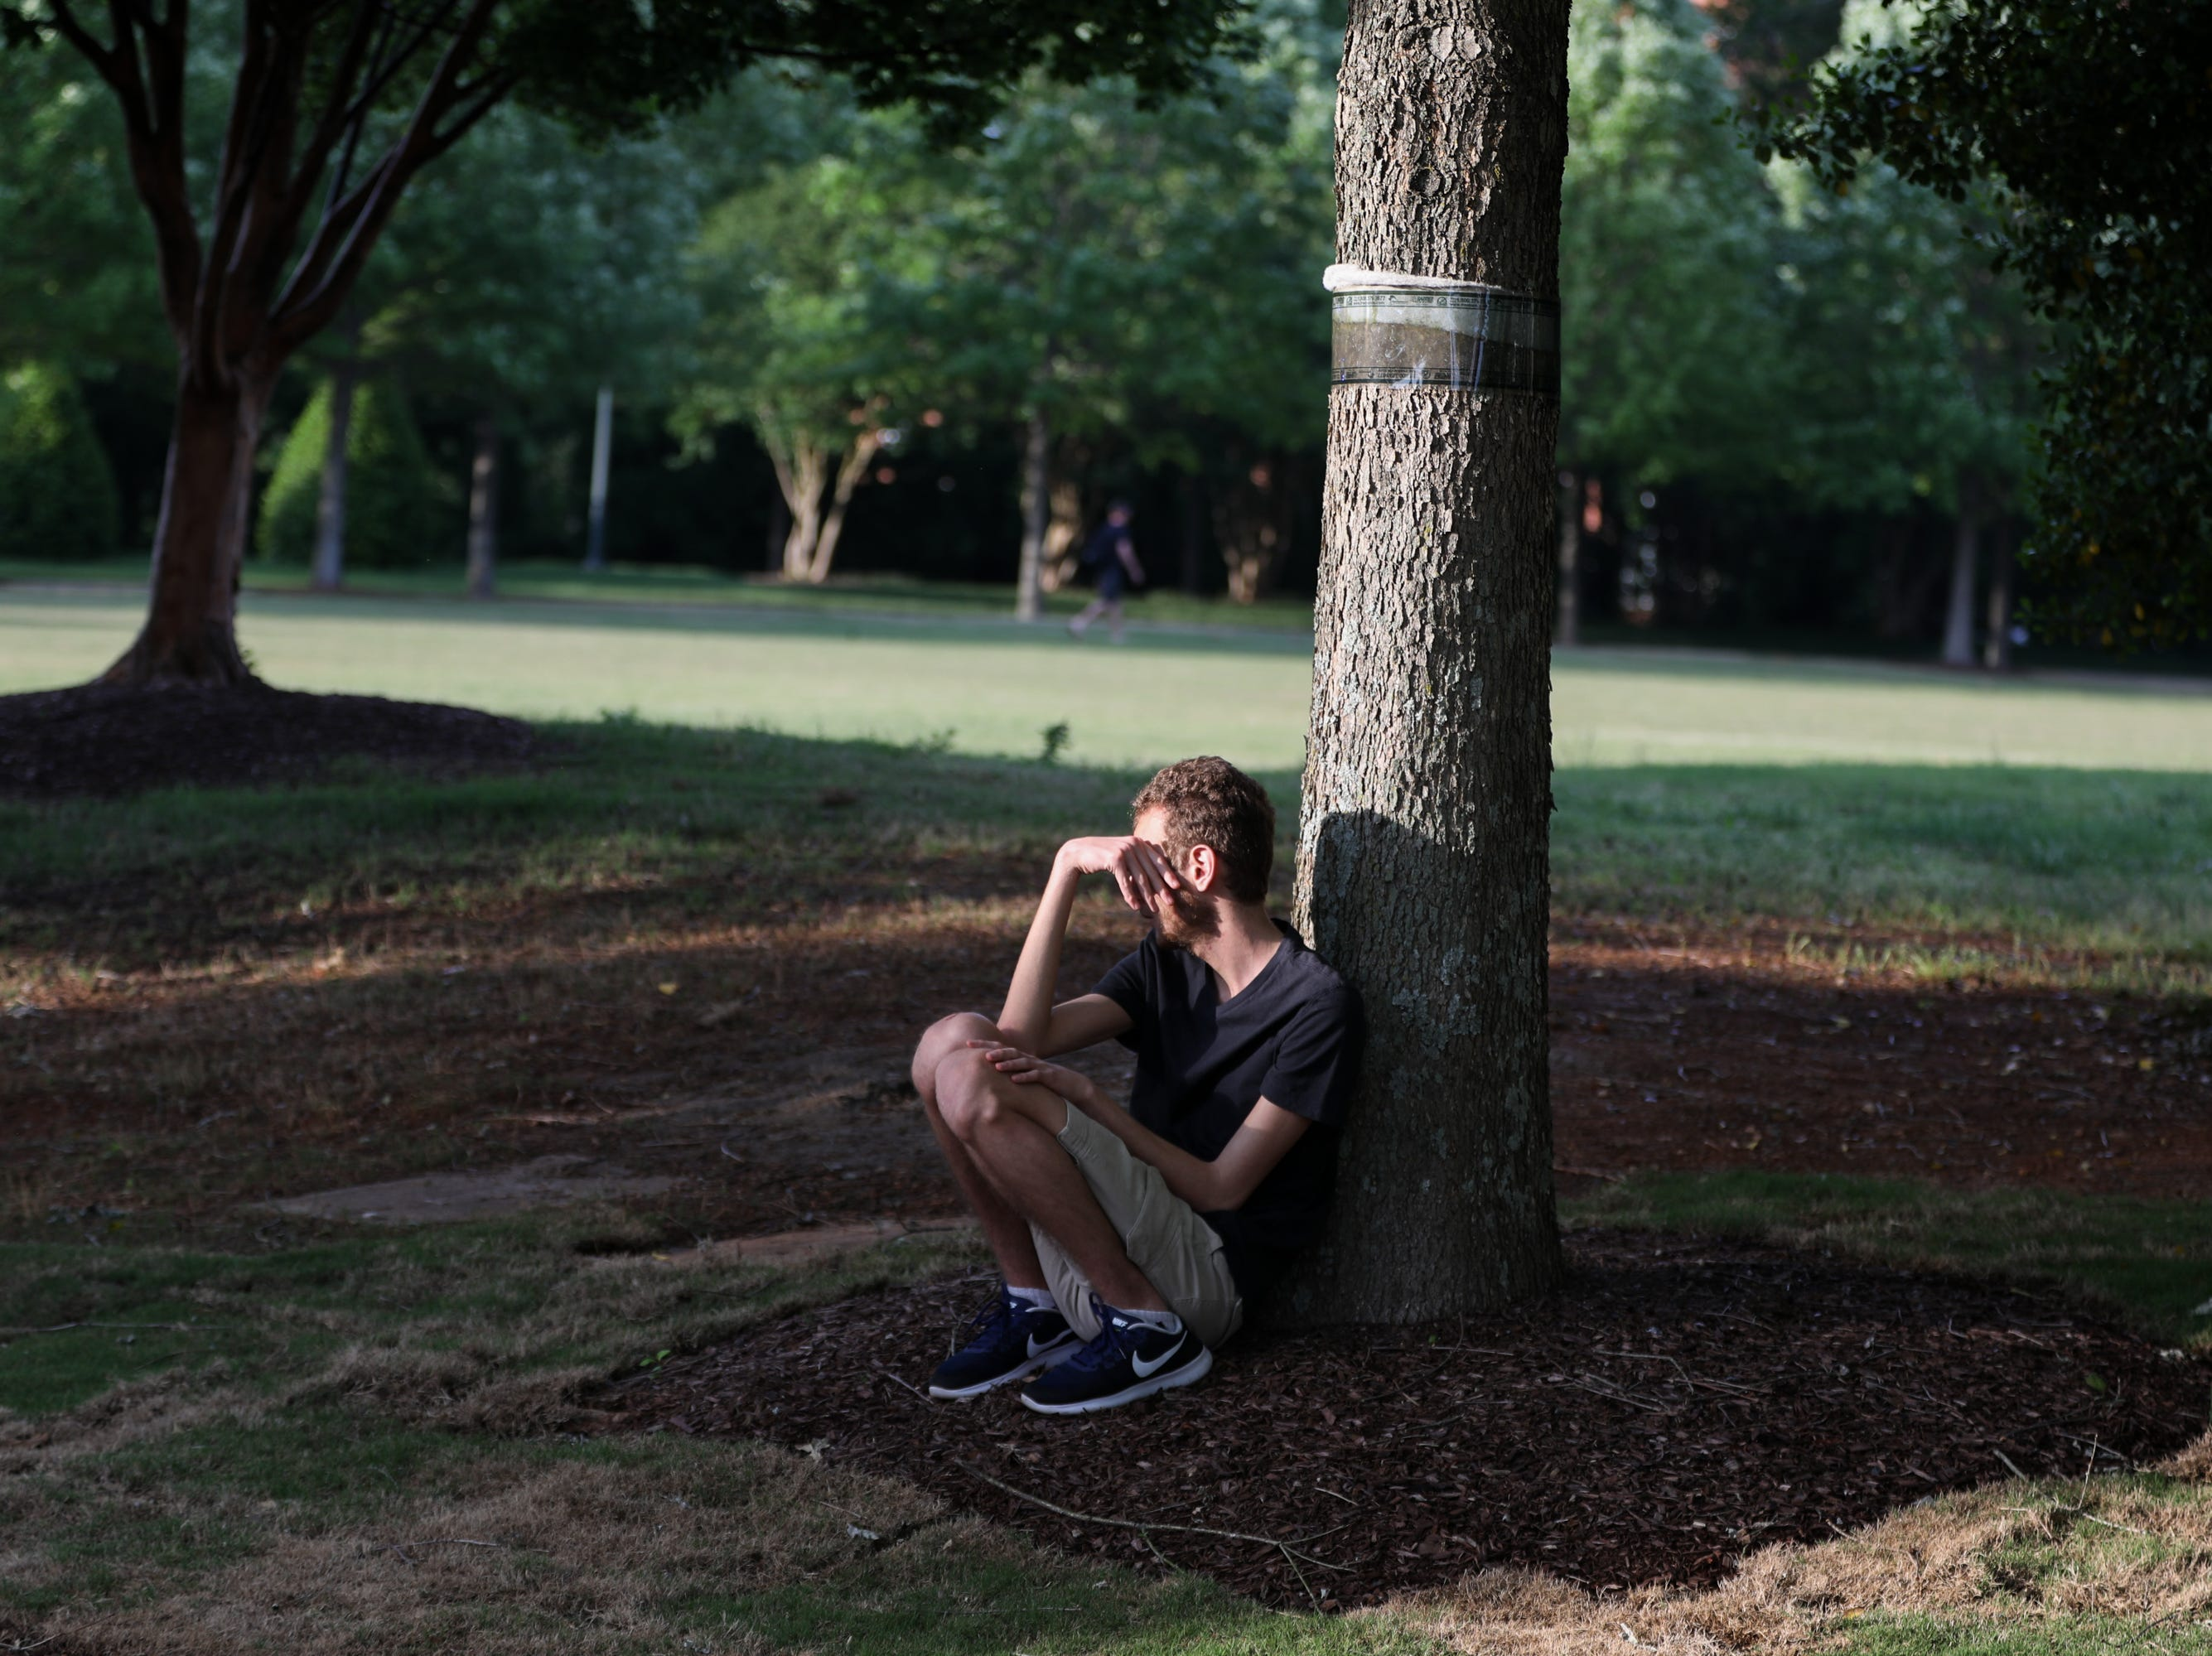 A student sits under a tree after a shooting on the campus of University of North Carolina Charlotte in University City, Charlotte, on April 30, 2019. - Six people were shot, two of them died on the University of North Carolina Charlotte campus. One person was taken into custody, according to police sources.